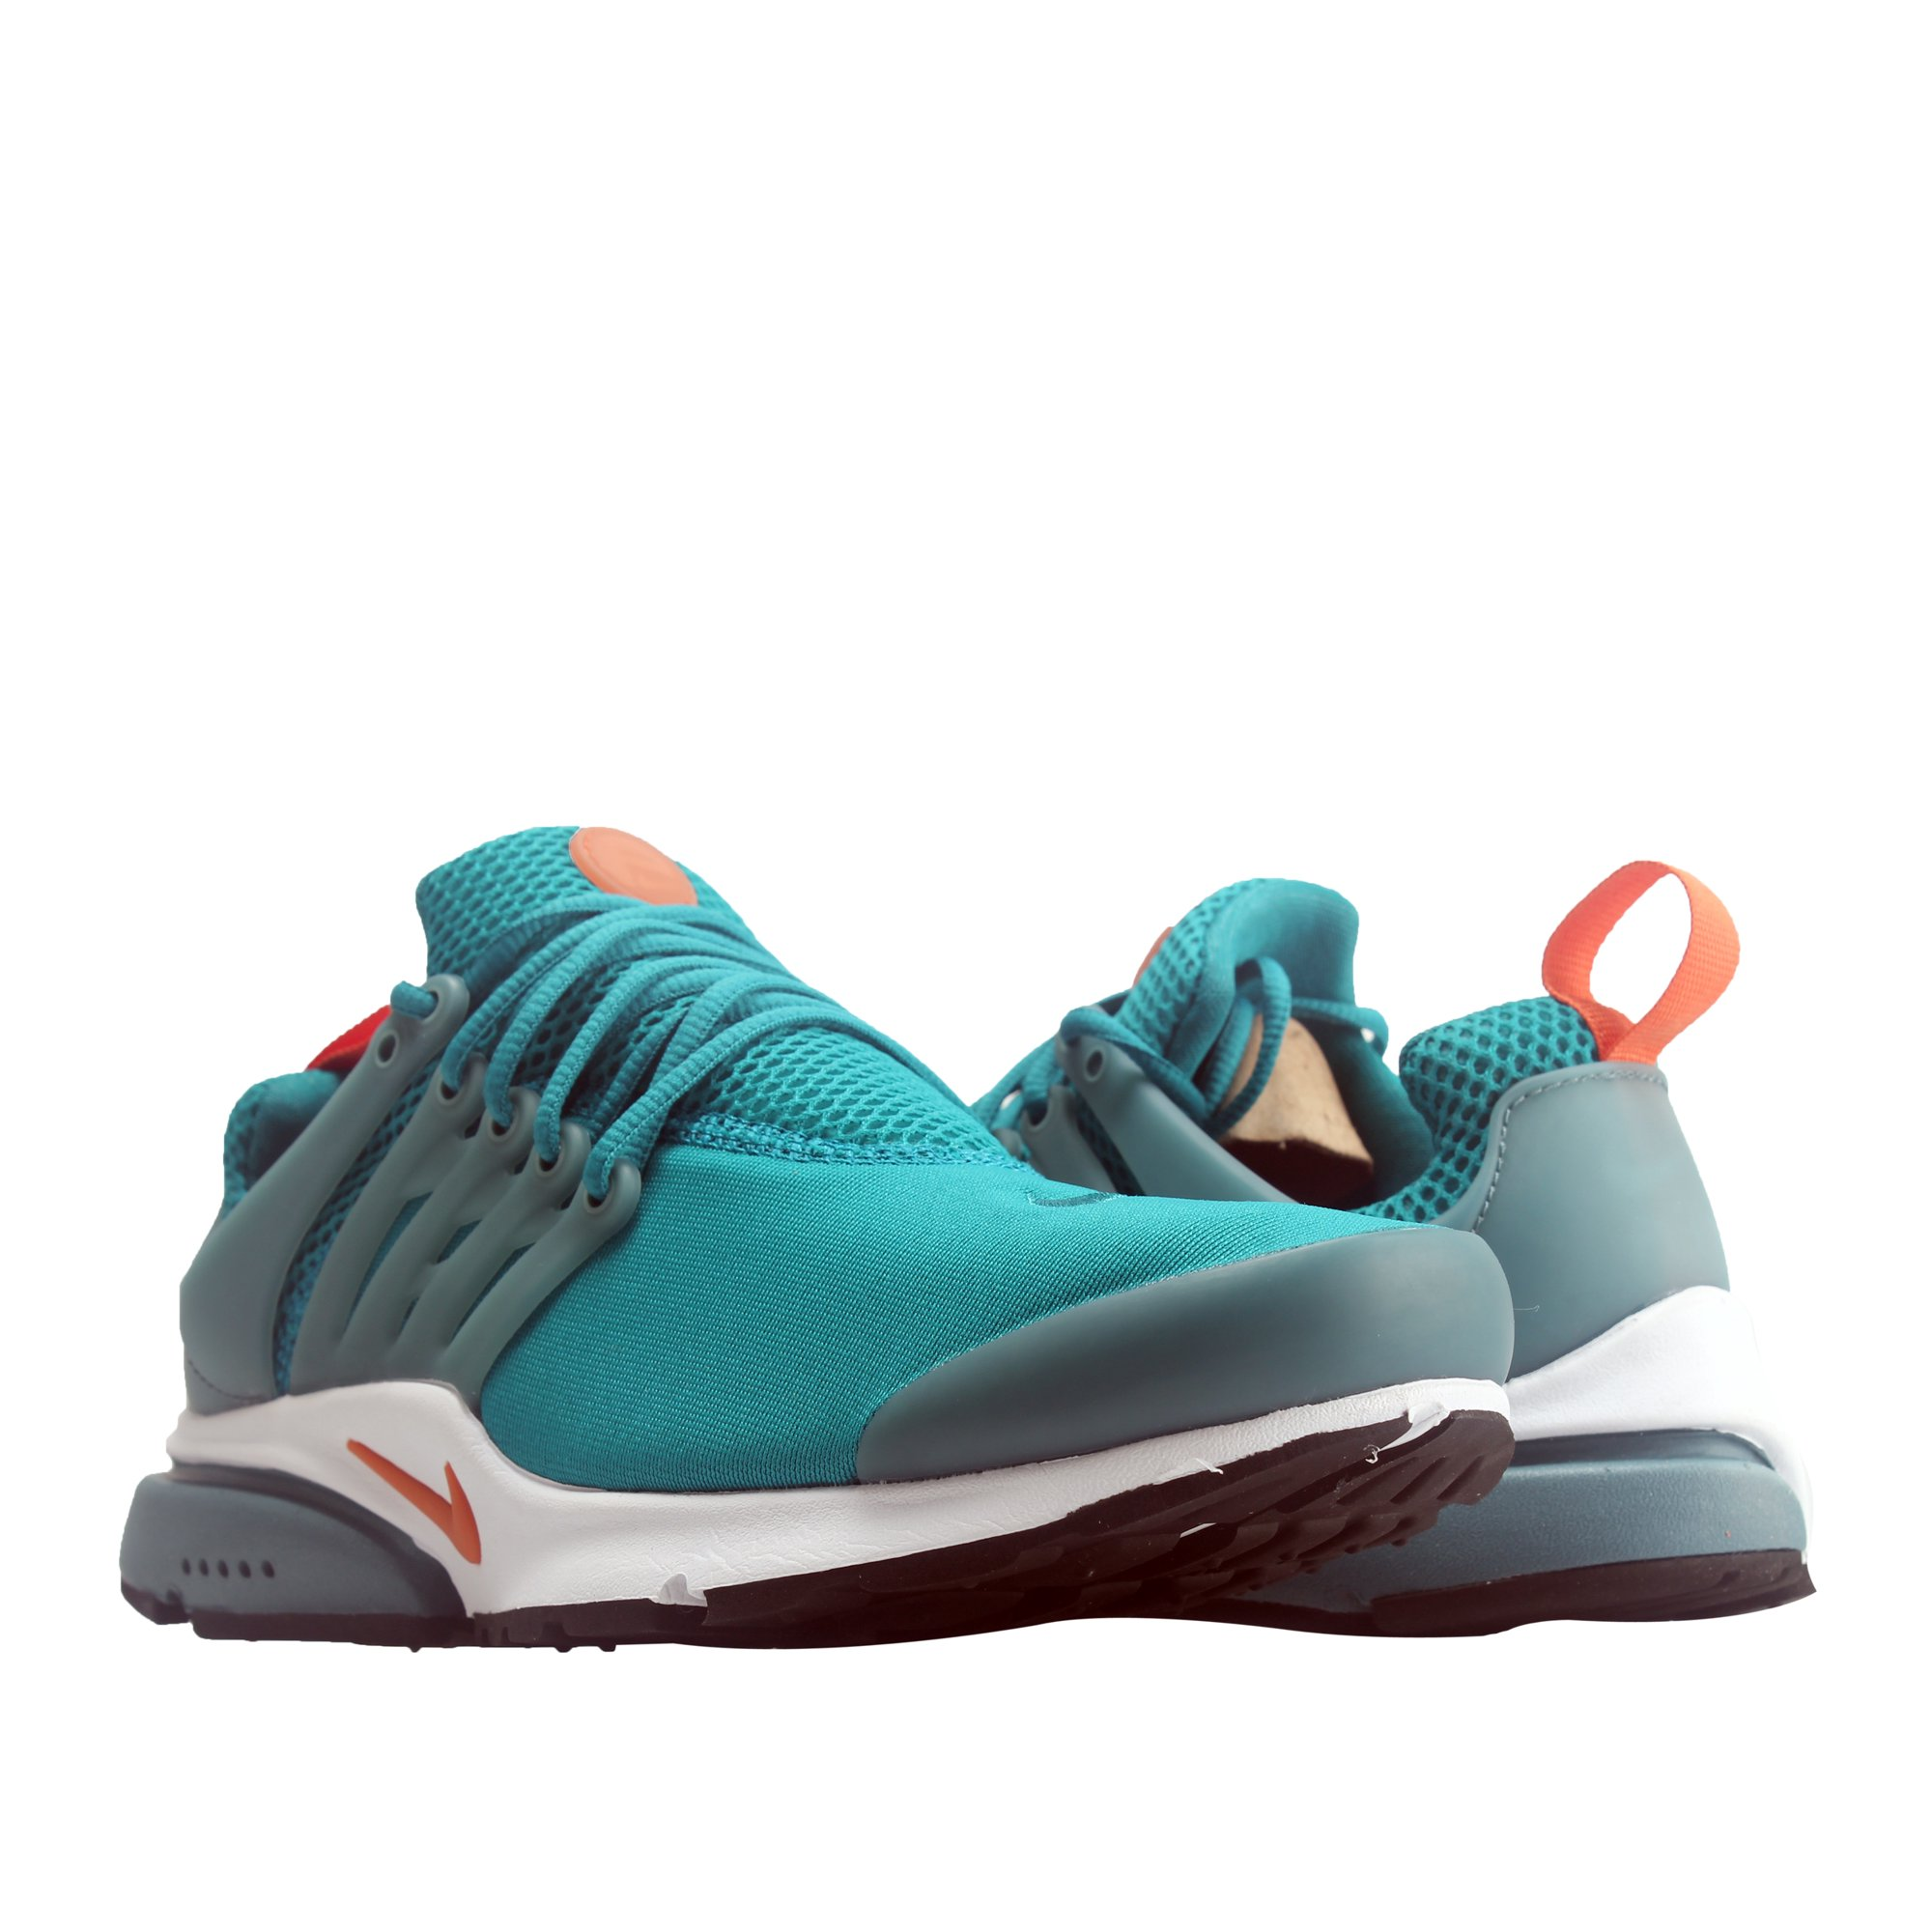 the latest 64ea2 1fcfe Nike Air Presto Essential Dolphins Teal Orange Men s Running Shoes  848187-404